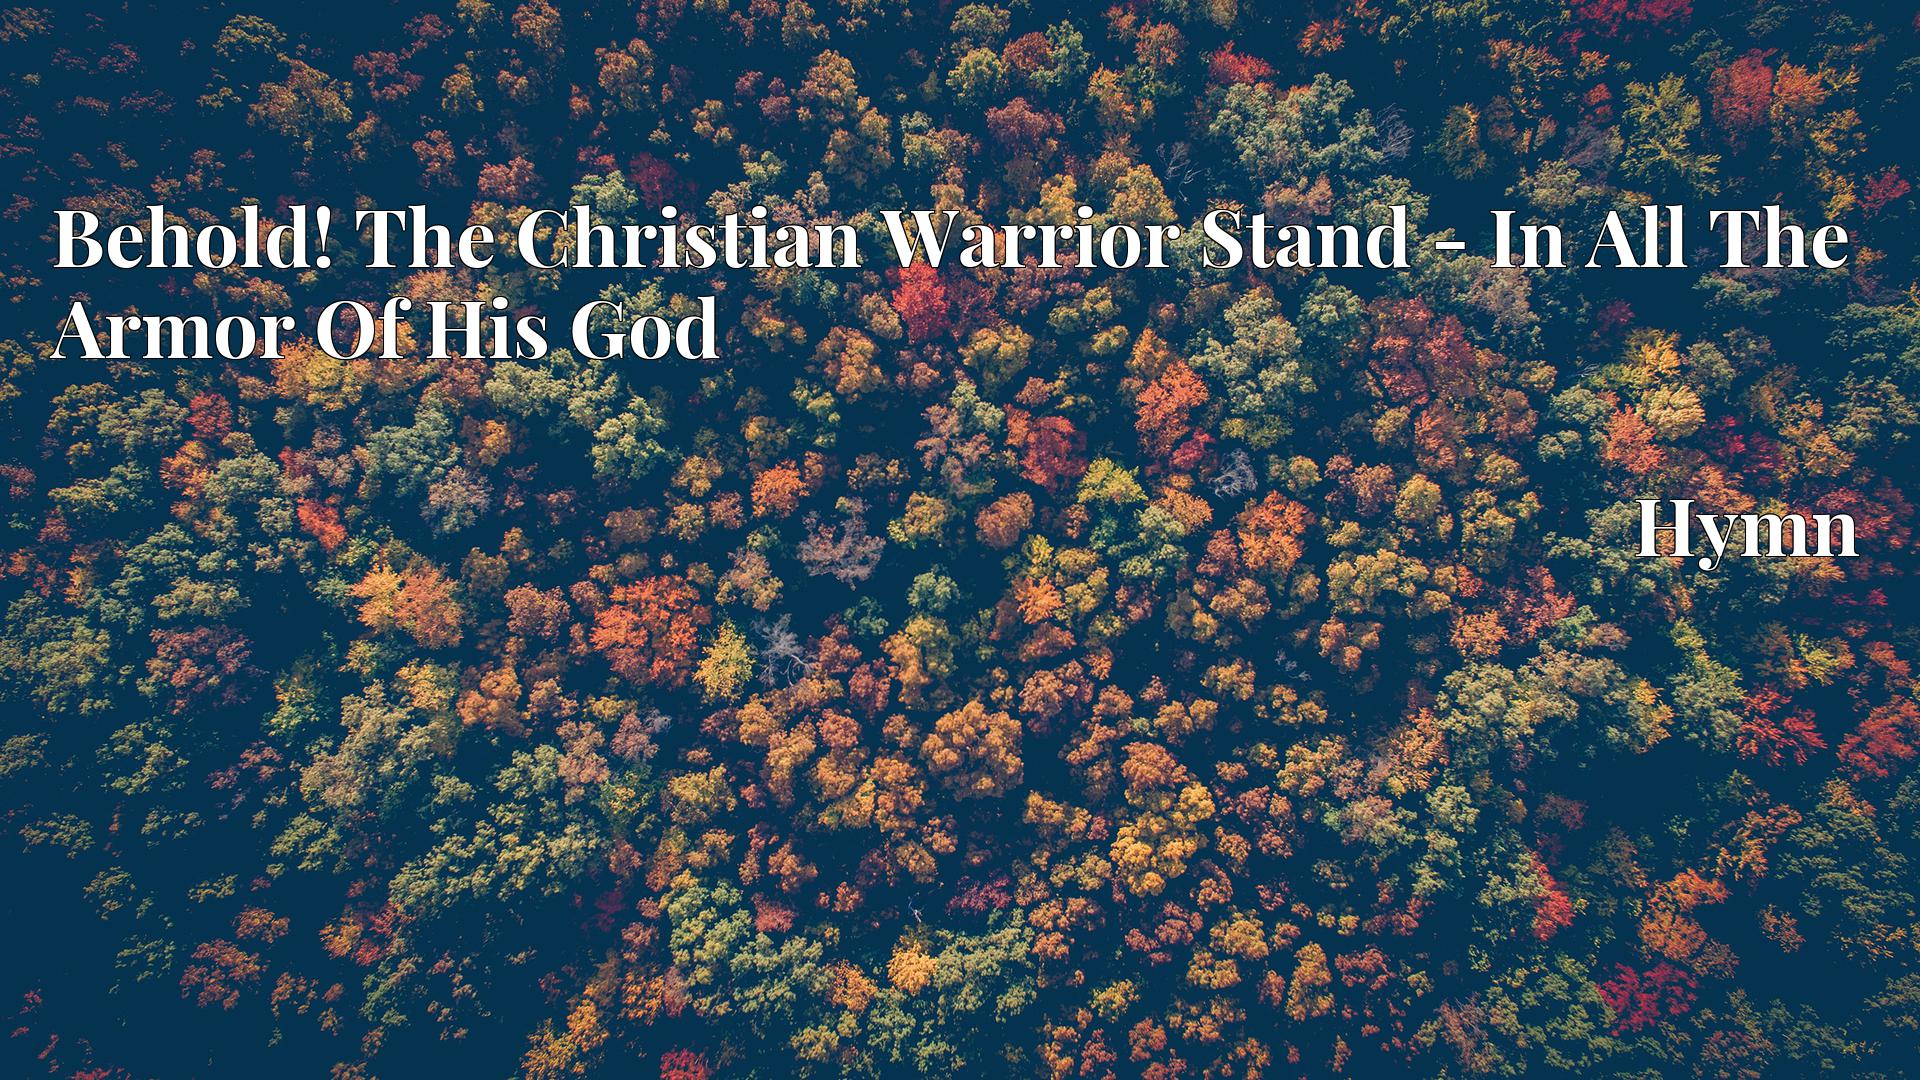 Behold! The Christian Warrior Stand - In All The Armor Of His God Hymn